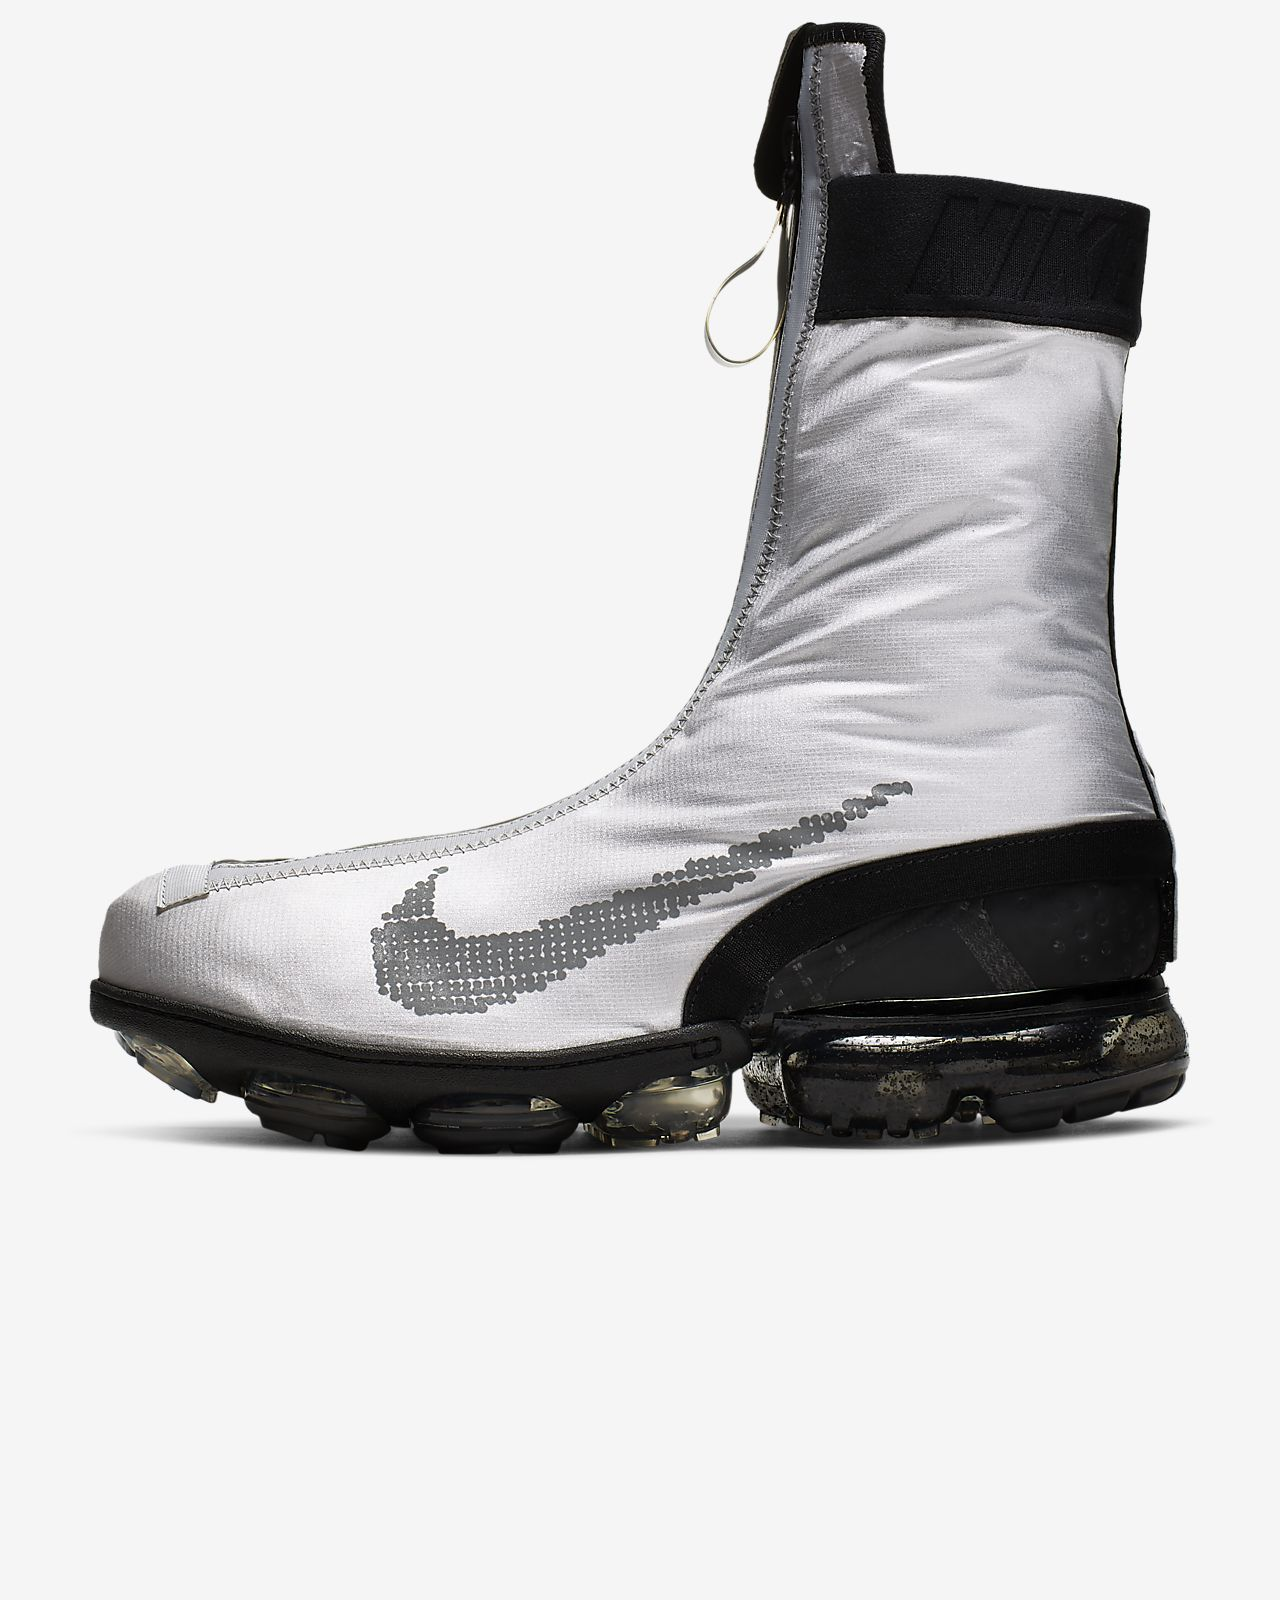 Buty Nike Air VaporMax FlyKnit Gaiter ISPA